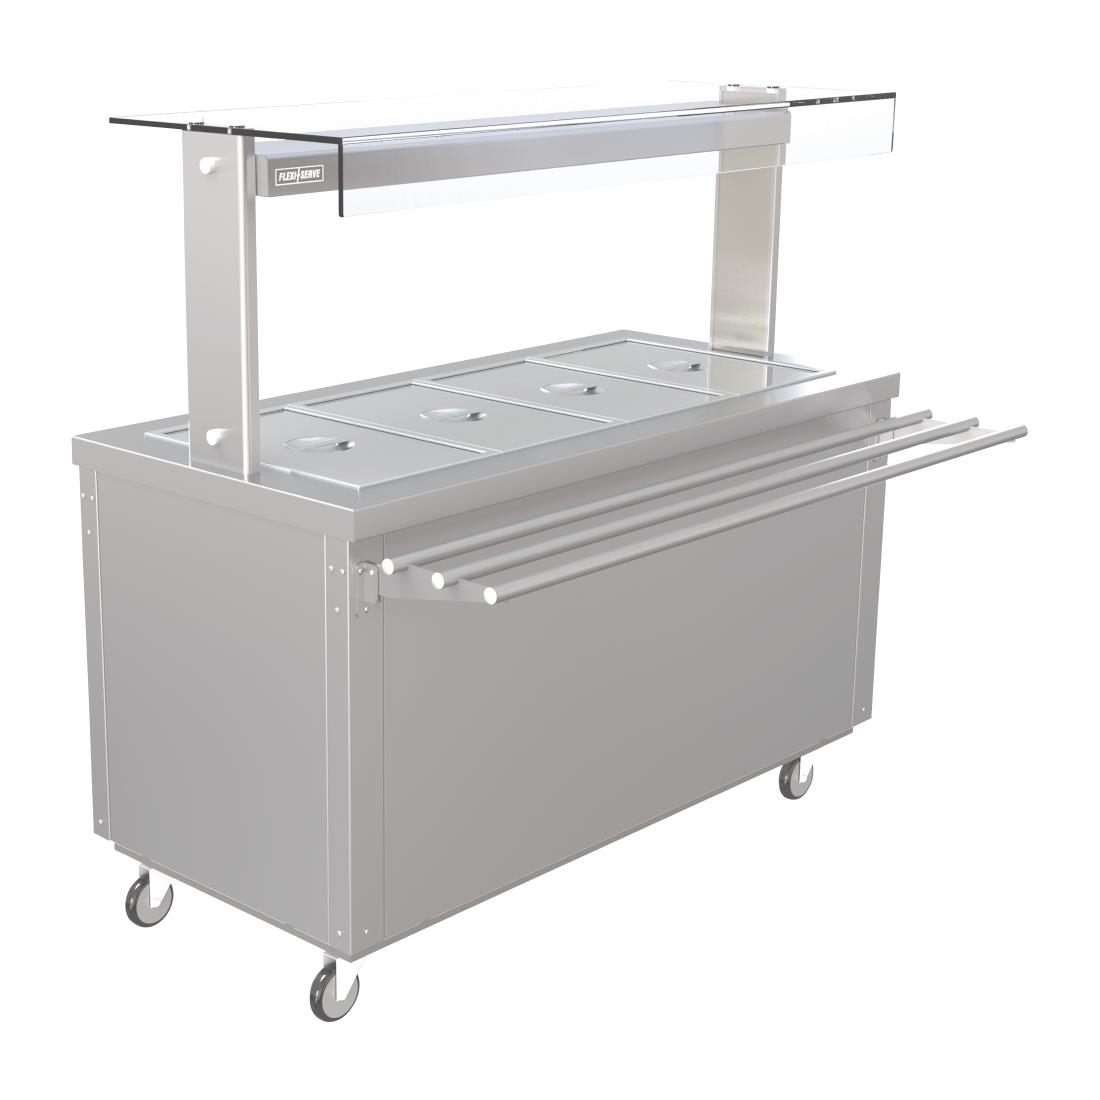 Image of Parry Ambient GN Buffet Bar with Chilled Cupboard 1495mm FS-AW4PACK